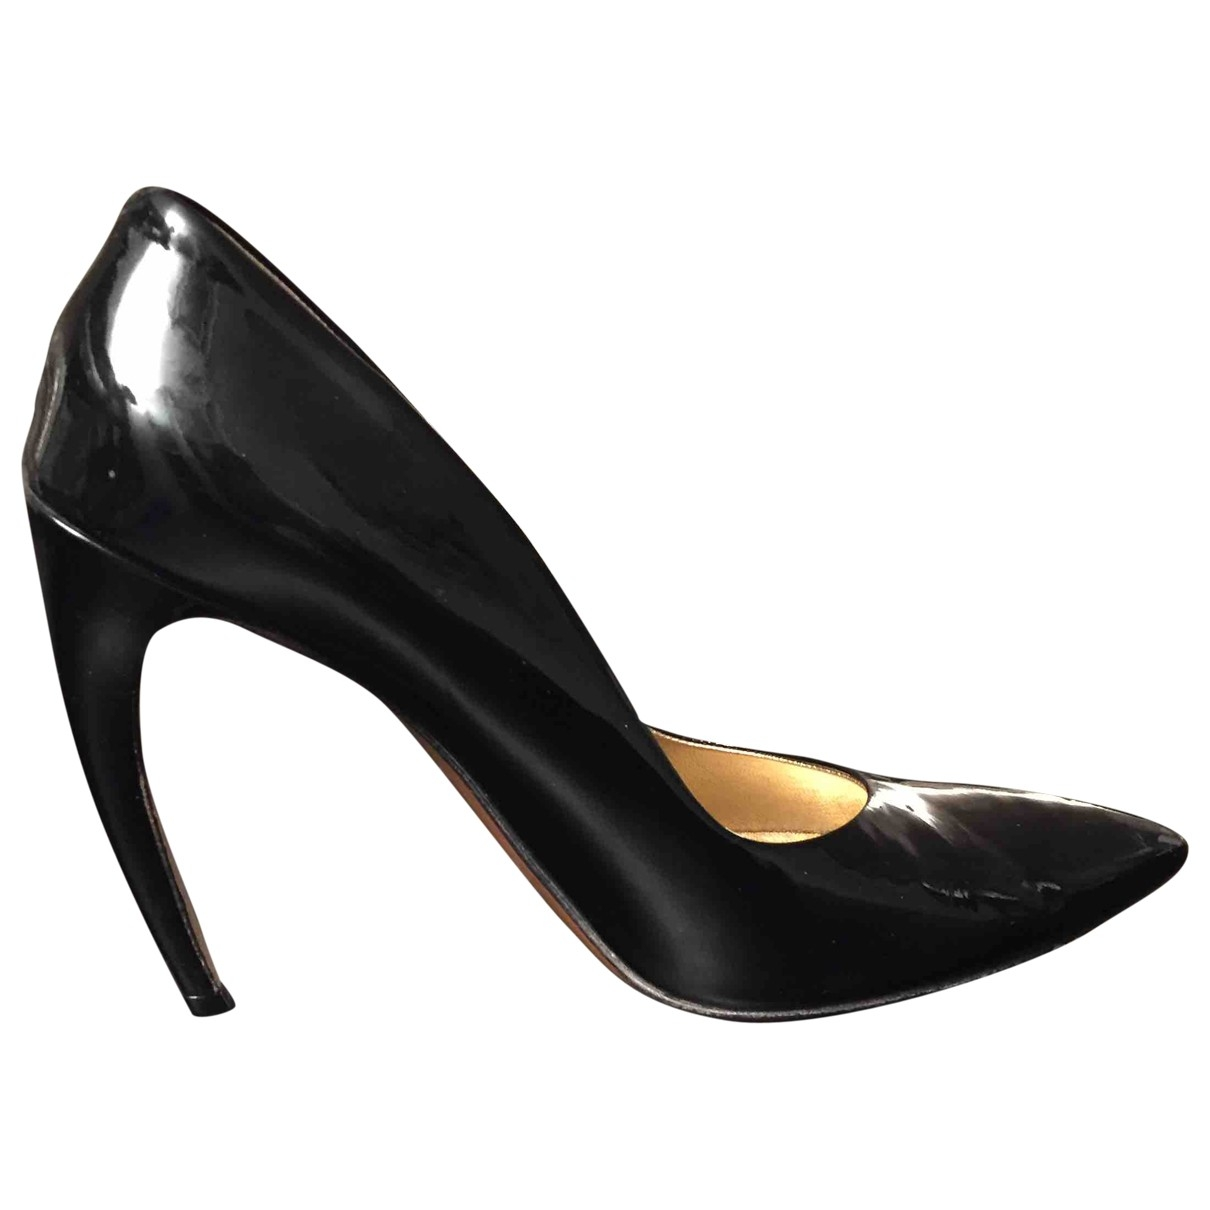 Walter Steiger \N Black Patent leather Heels for Women 41 EU